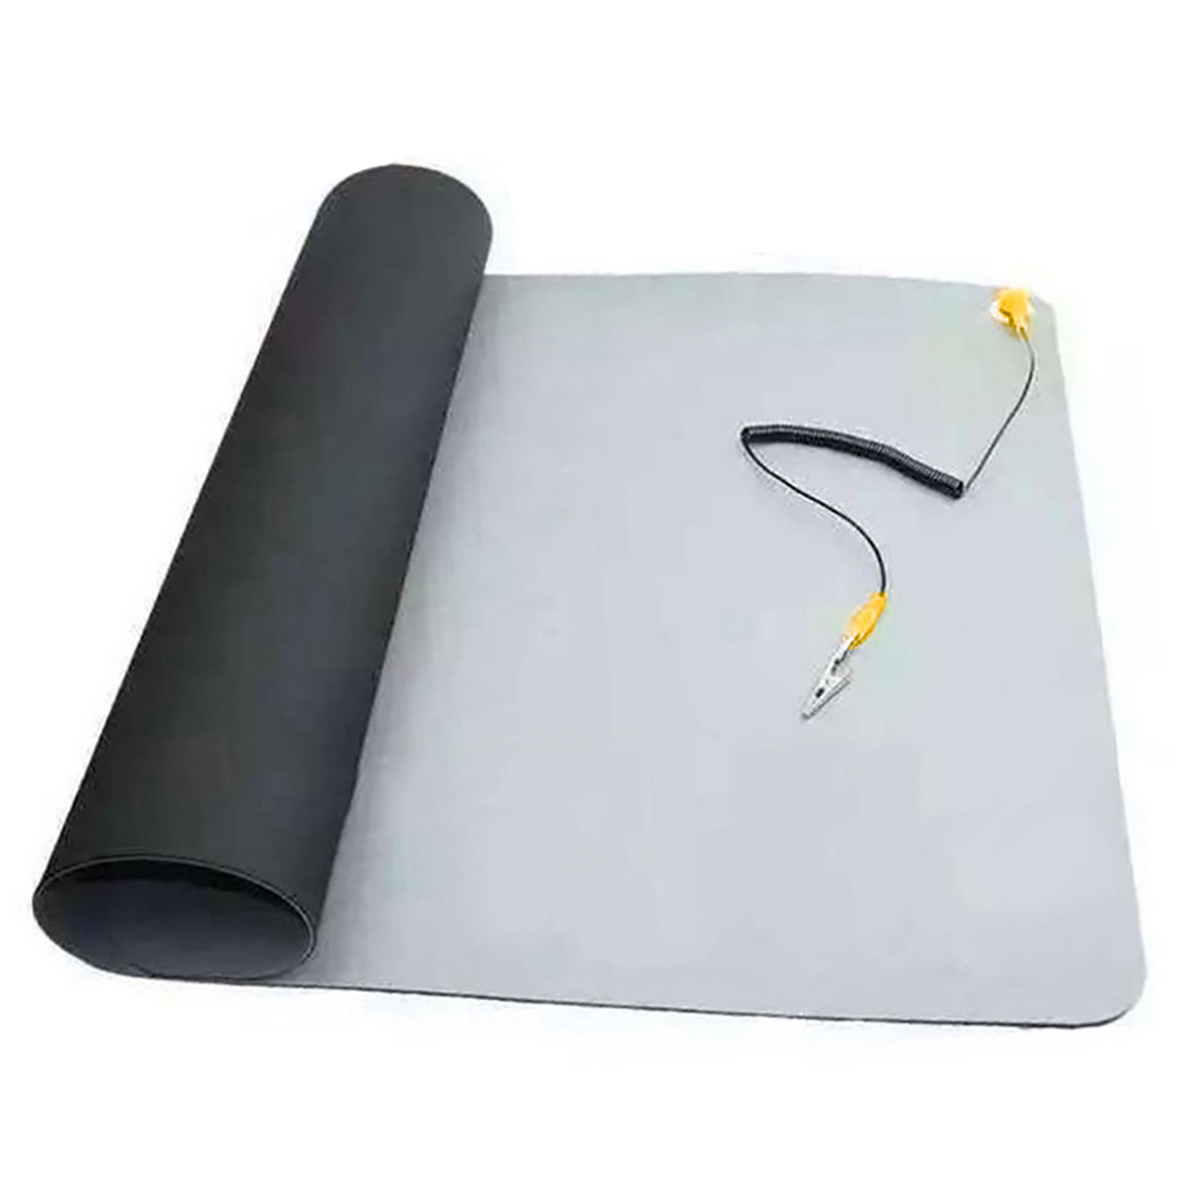 1pc 70*50 cm Black Desktop Anti Static ESD Grounding Mat Silicone Pad with Mayitr Cord for Phone PC Laptop Repair Maintenance anti static elastic finger cots stalls yellow size l 50 pcs